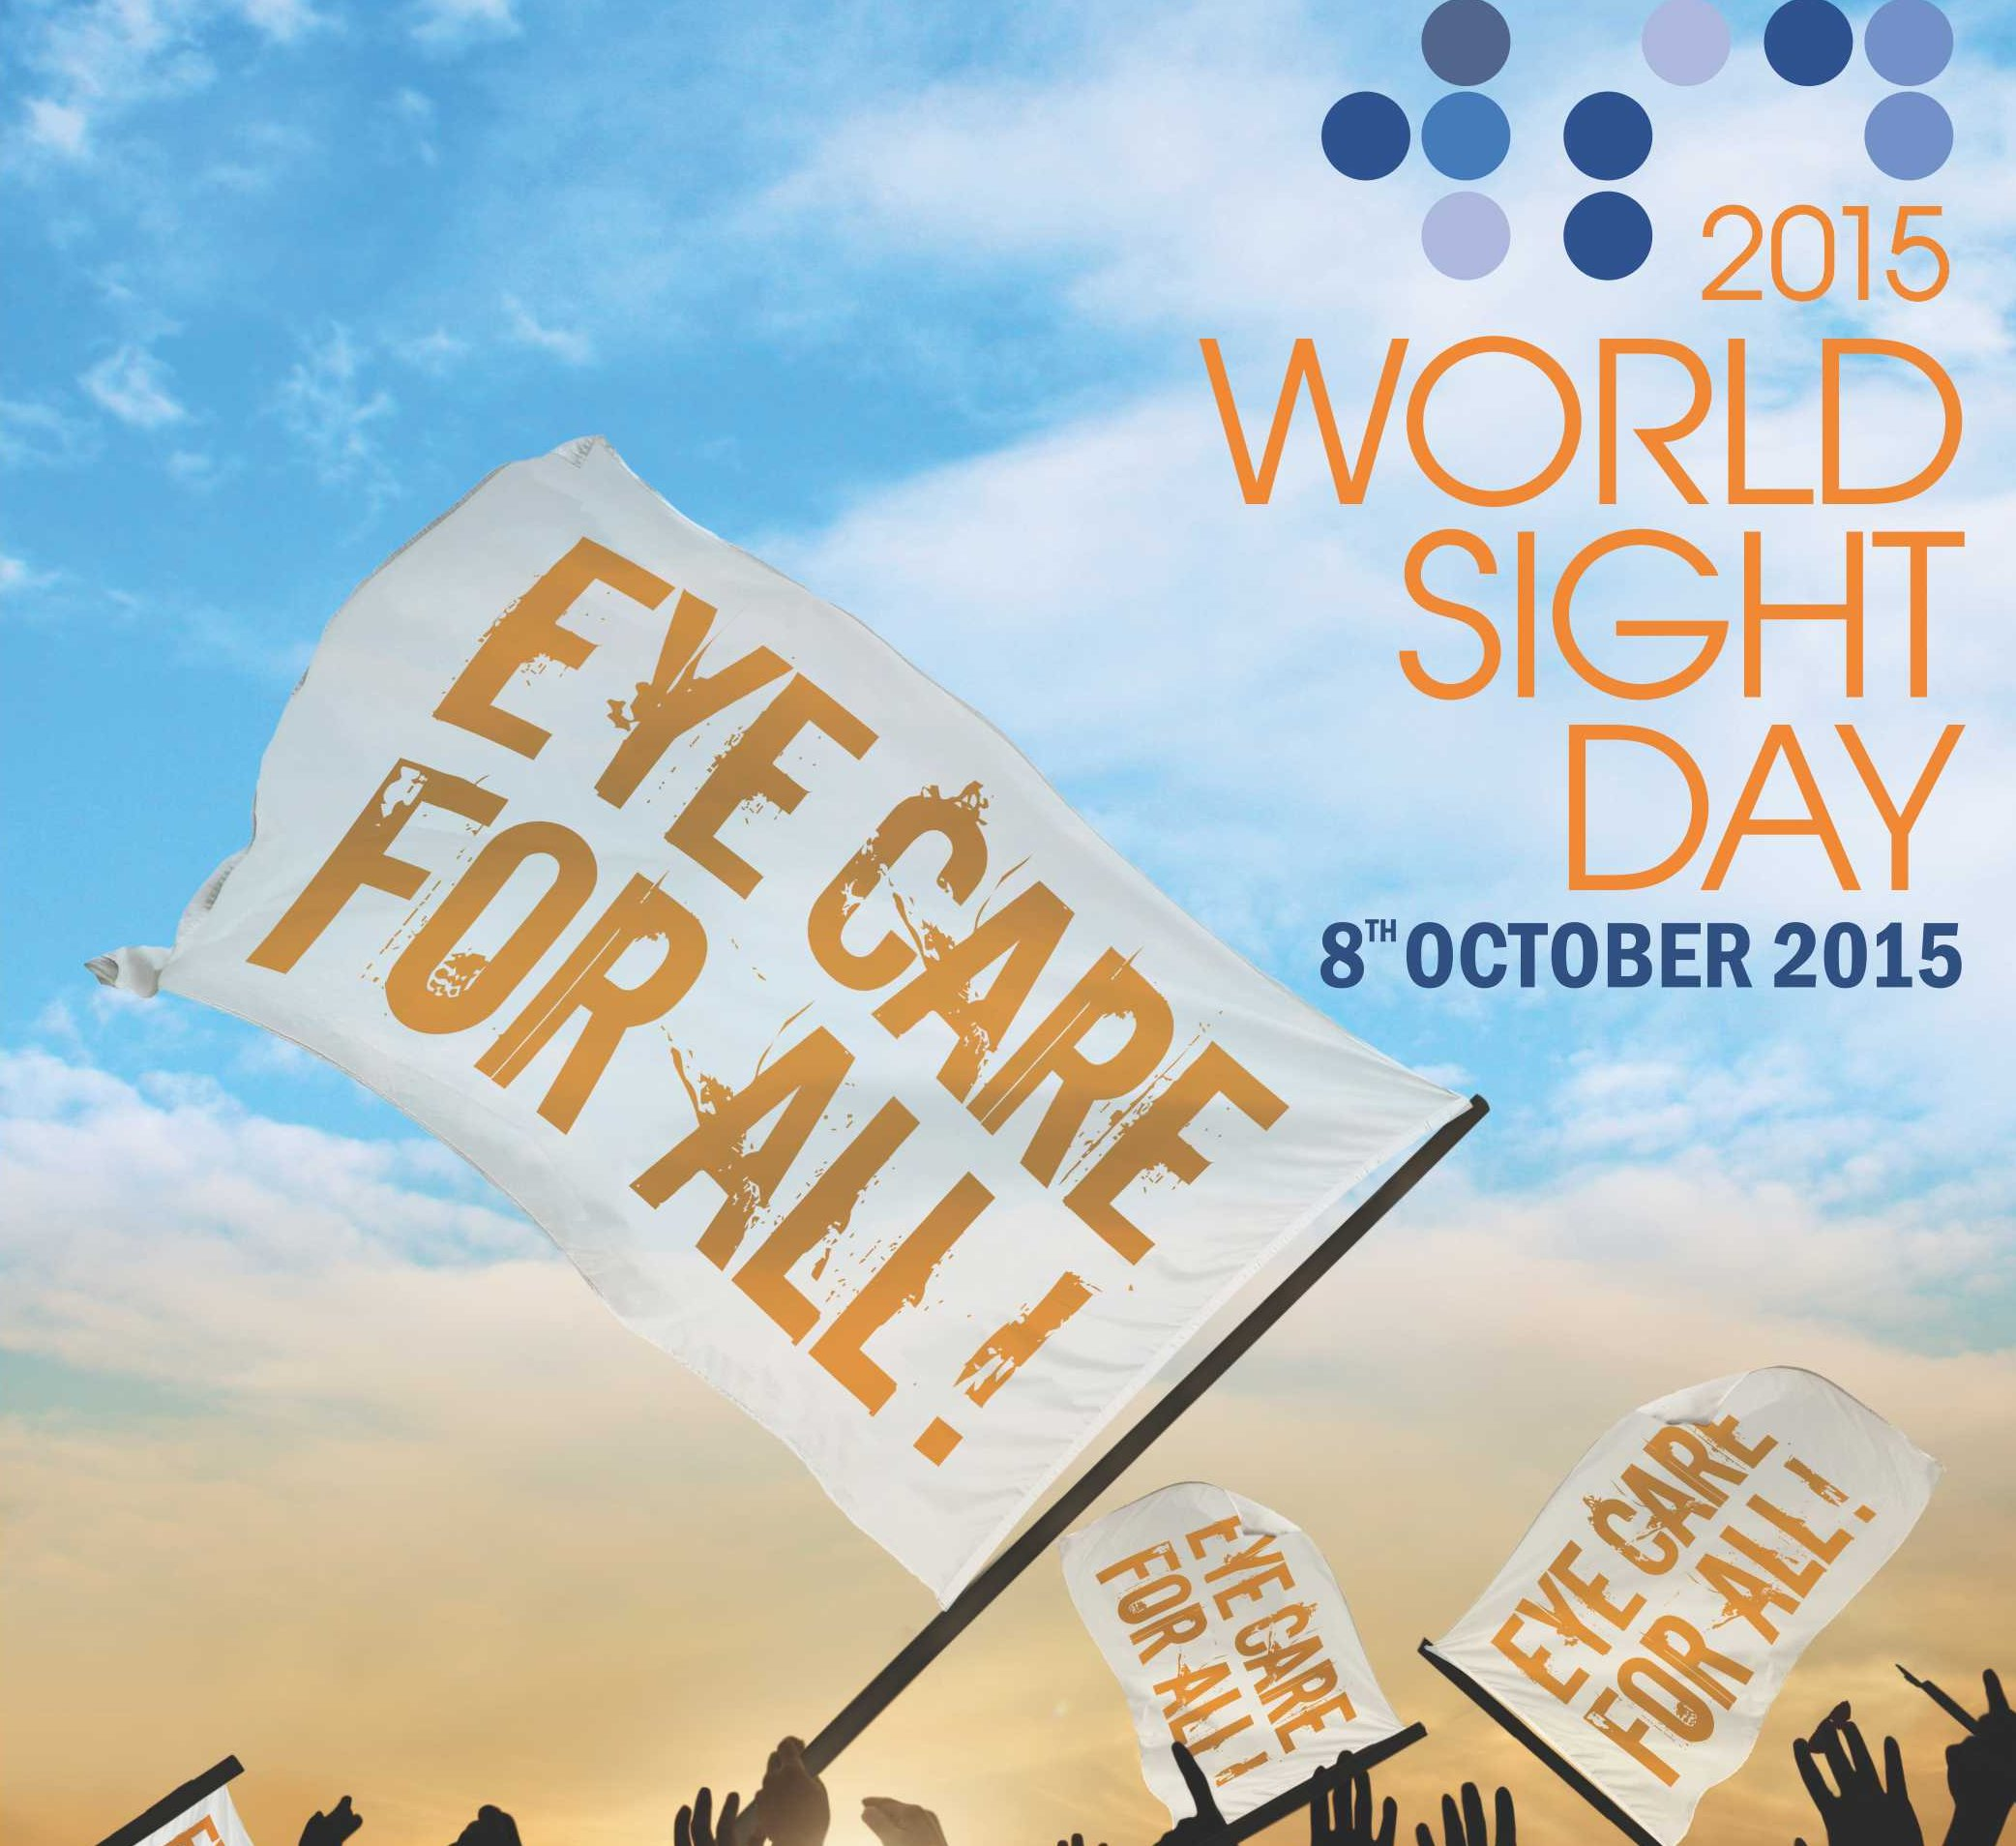 World Sight Day – 8th October 2015